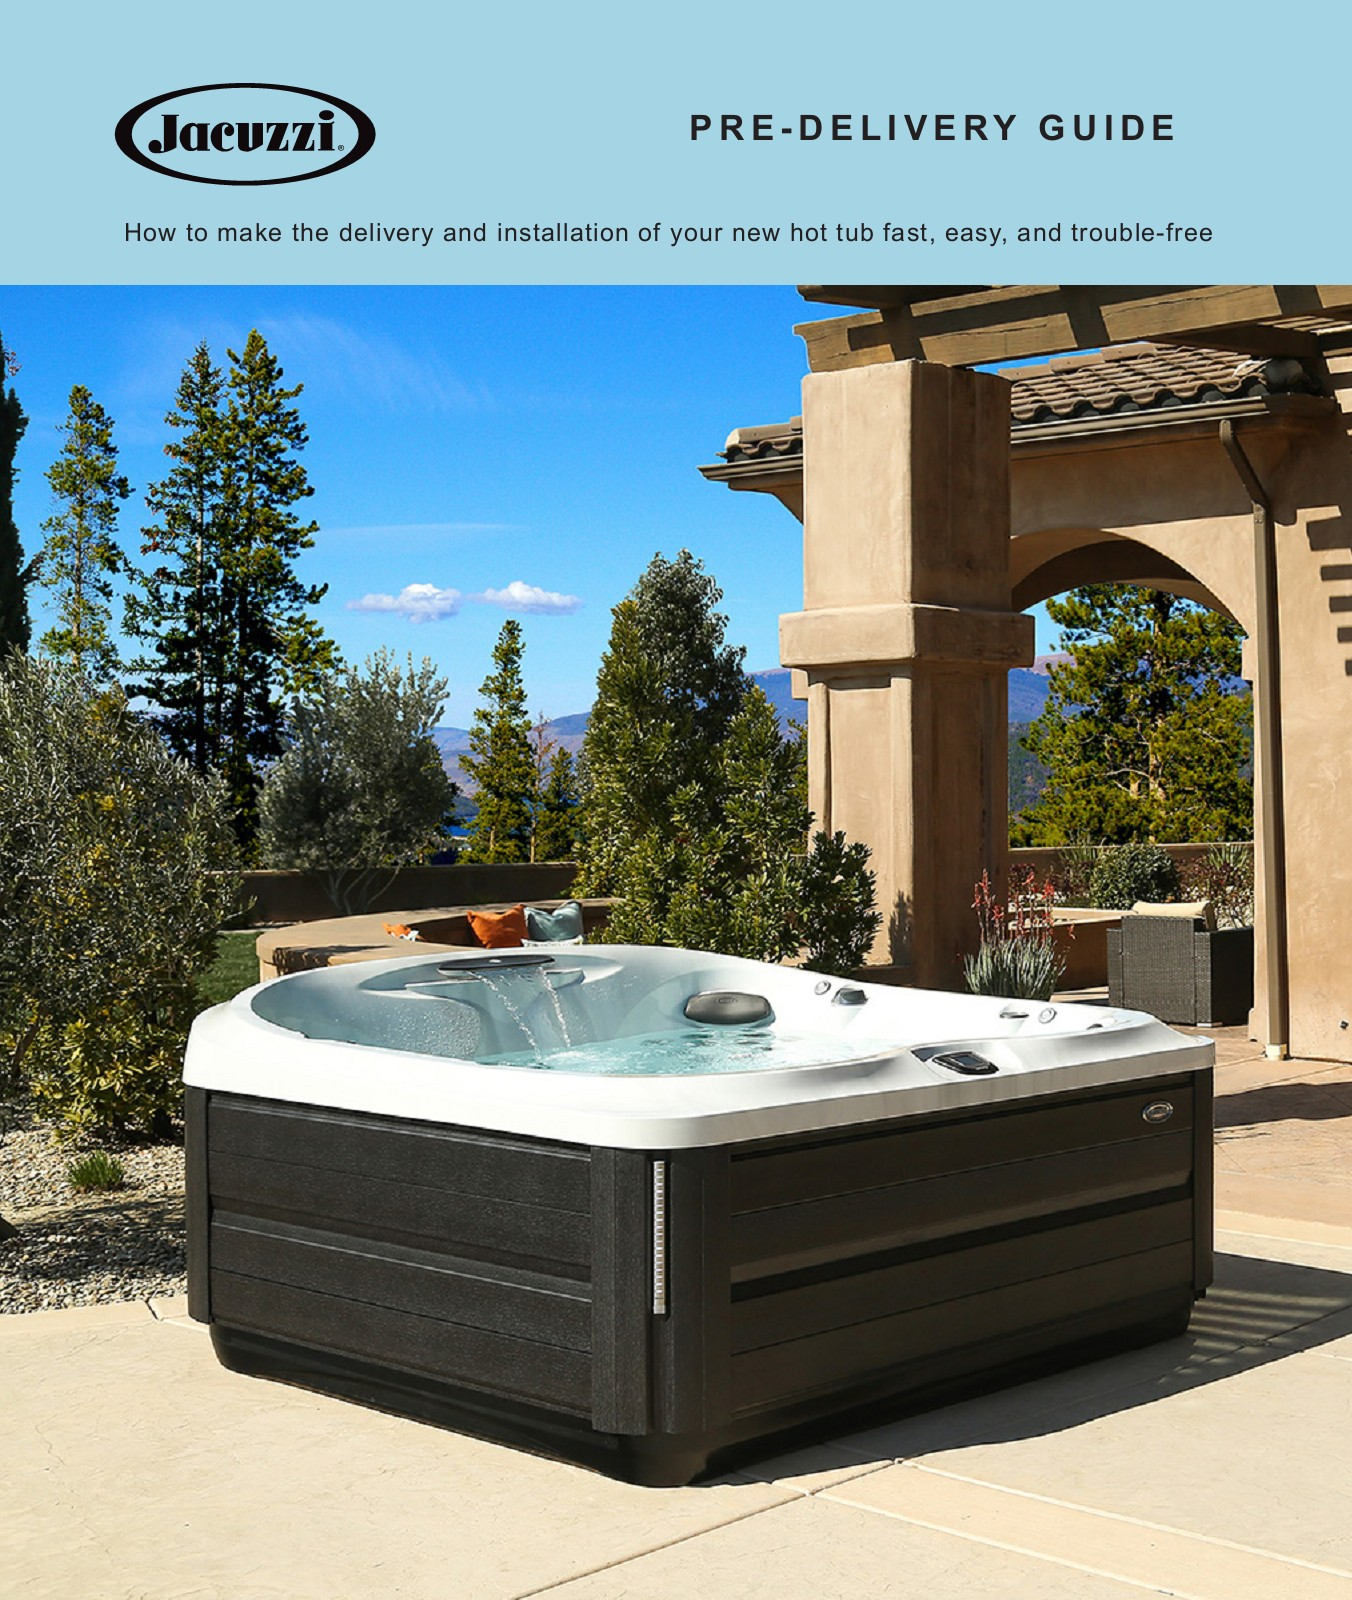 Jacuzzi Hot Tub Pre Delivery Guide from Koval Building Supply